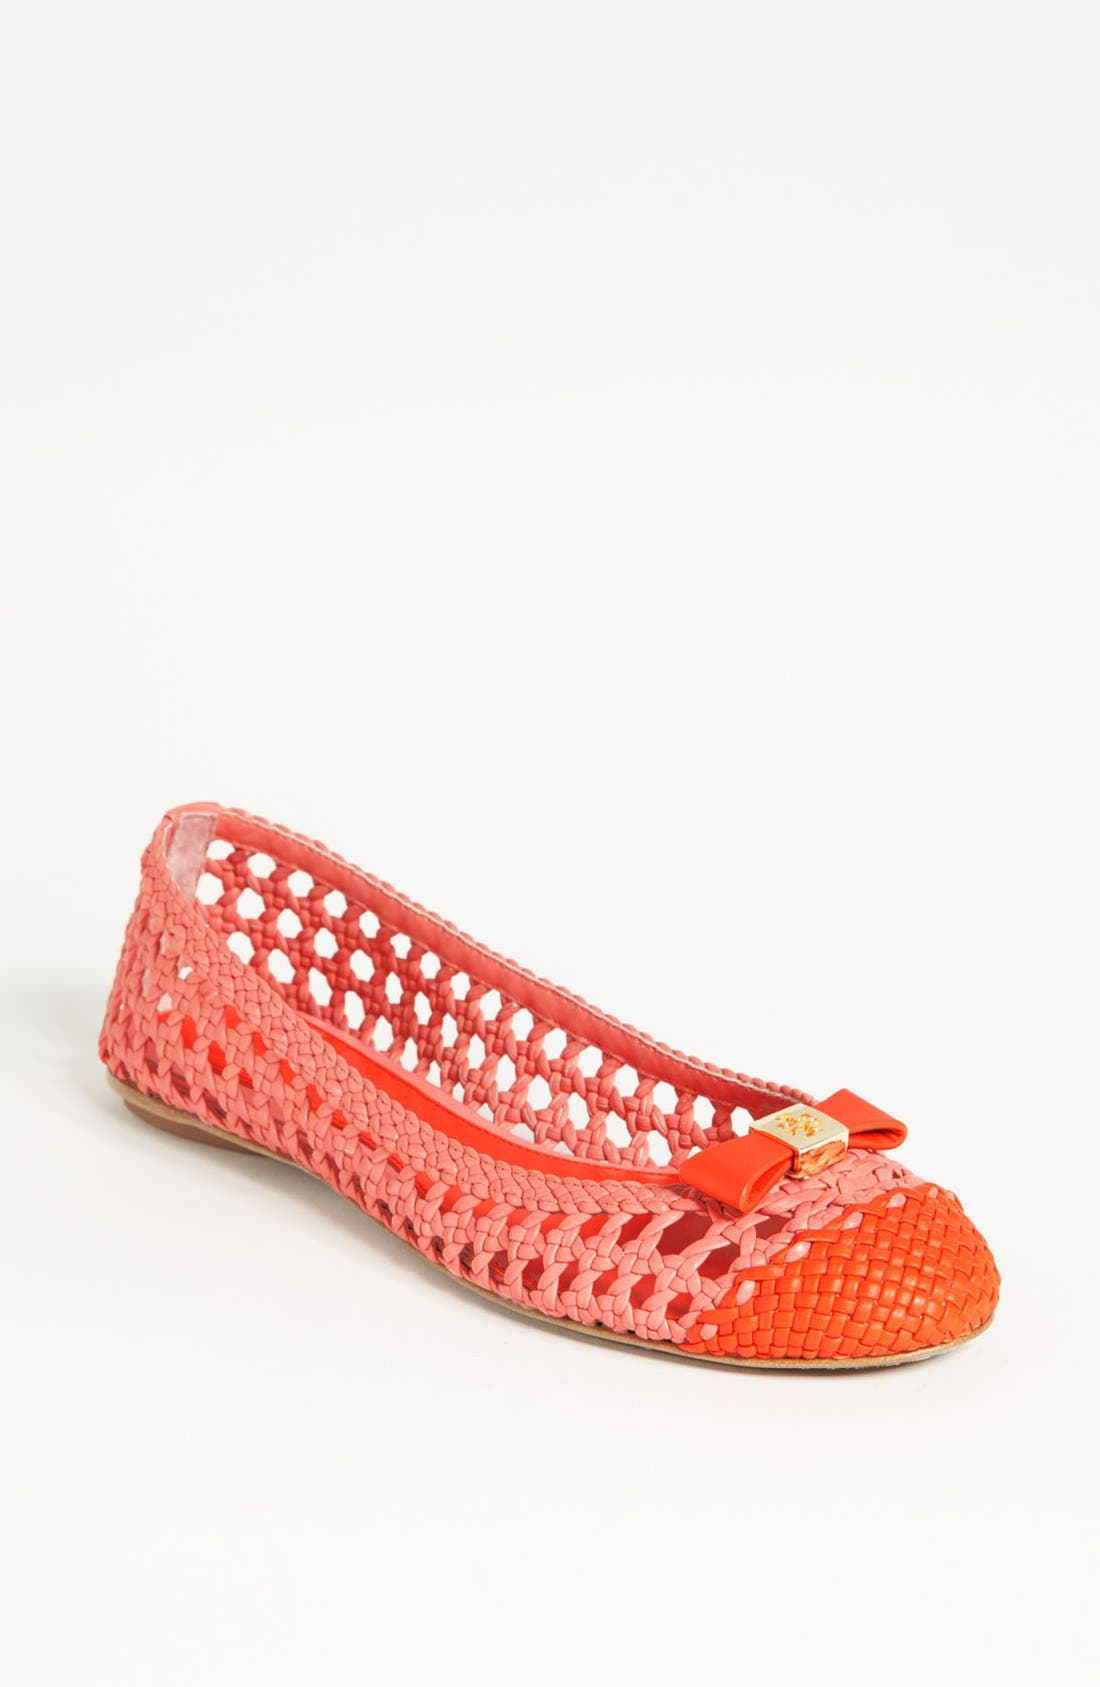 Alternate Image 1 Selected - Tory Burch 'Carlyle' Flat